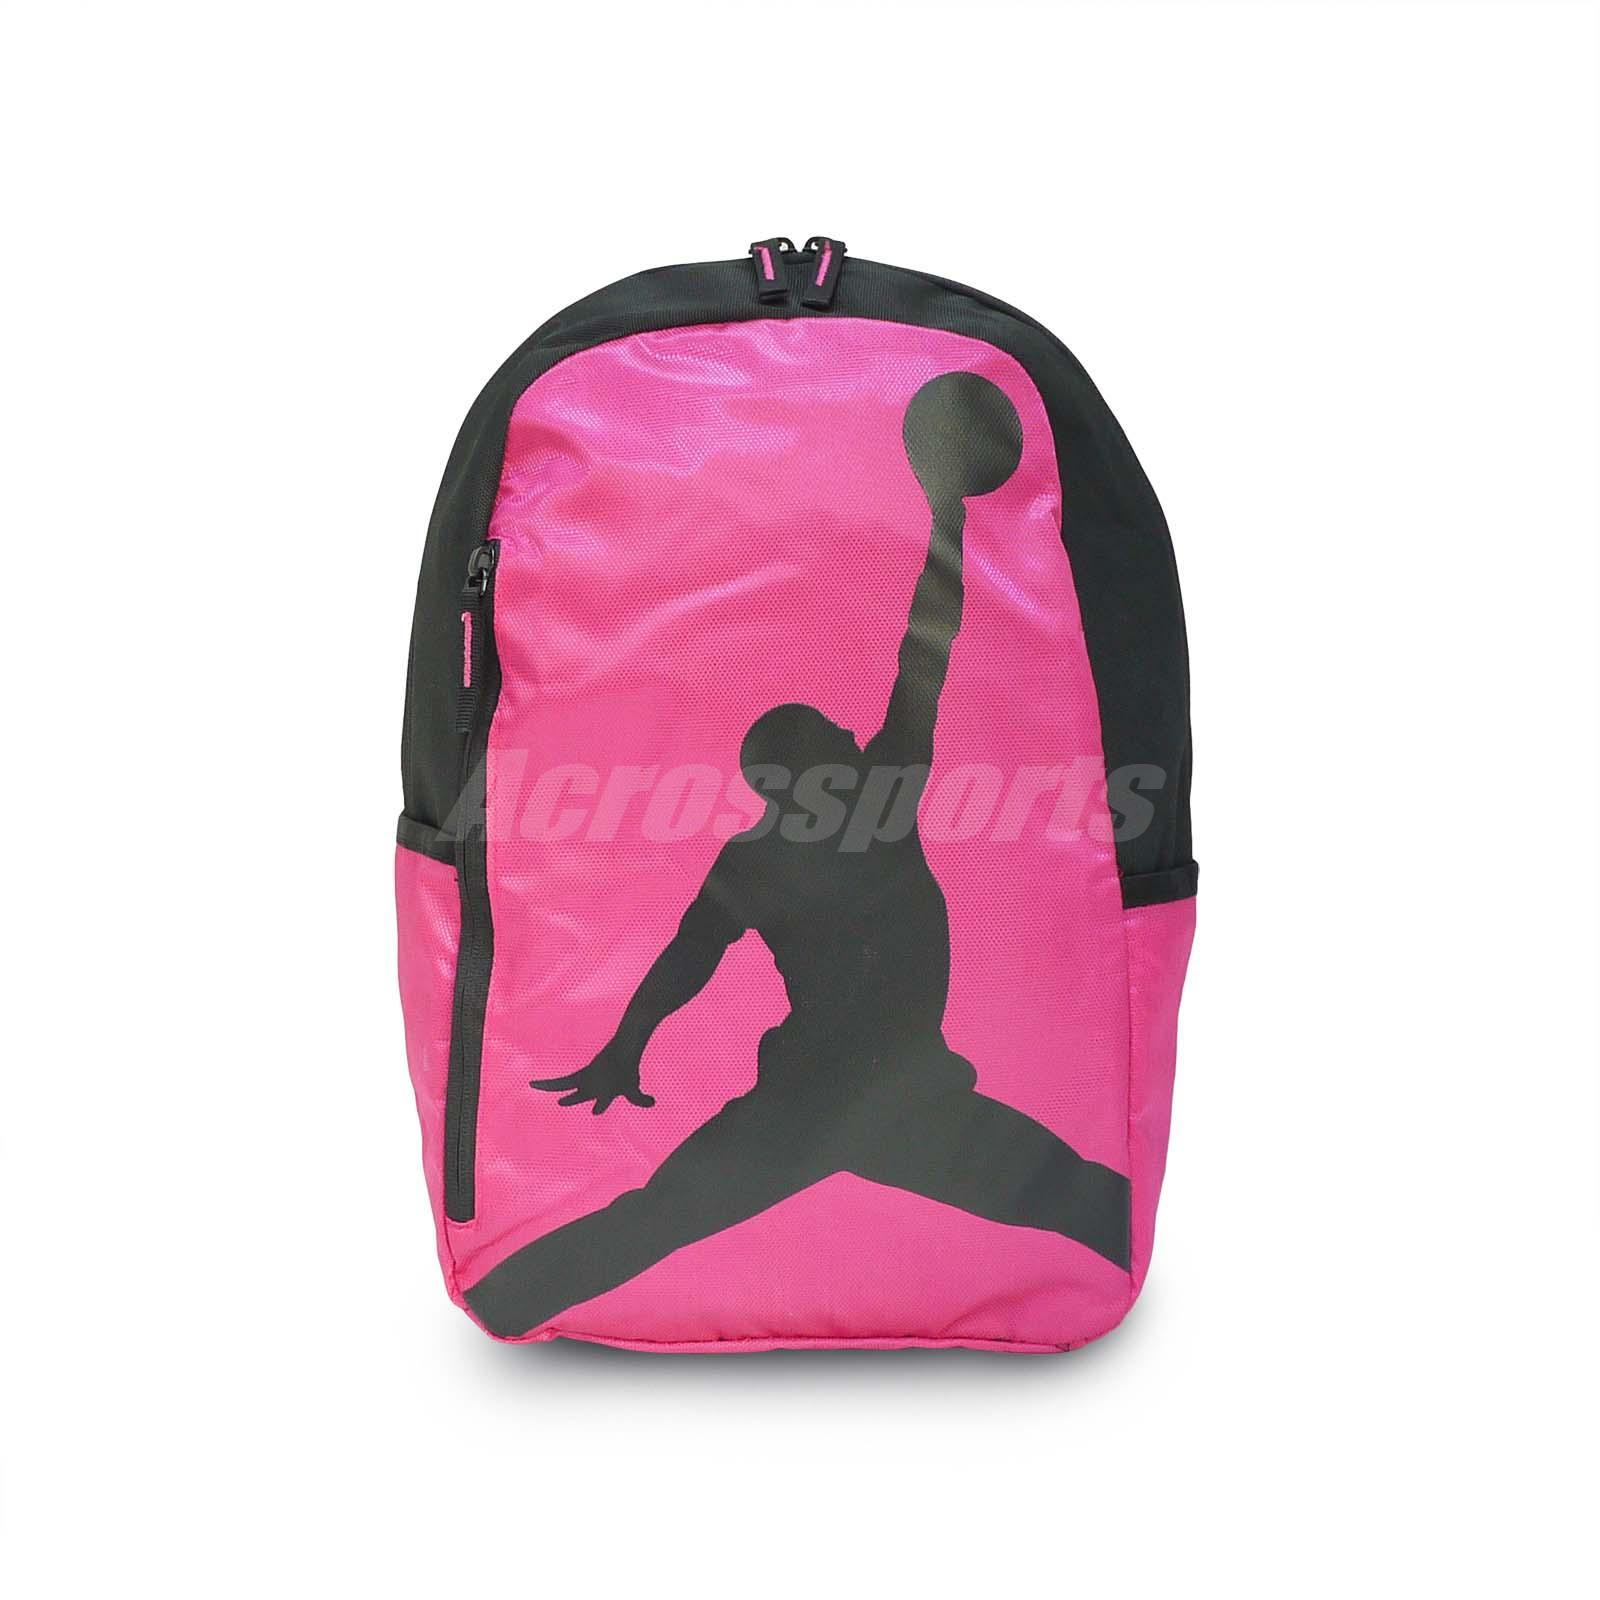 Details about Nike Air Jordan ISO Pack Peach Pink Black Medium Kids Backpack  Bag 8A1911-A5P b3d5bf0bff7bf